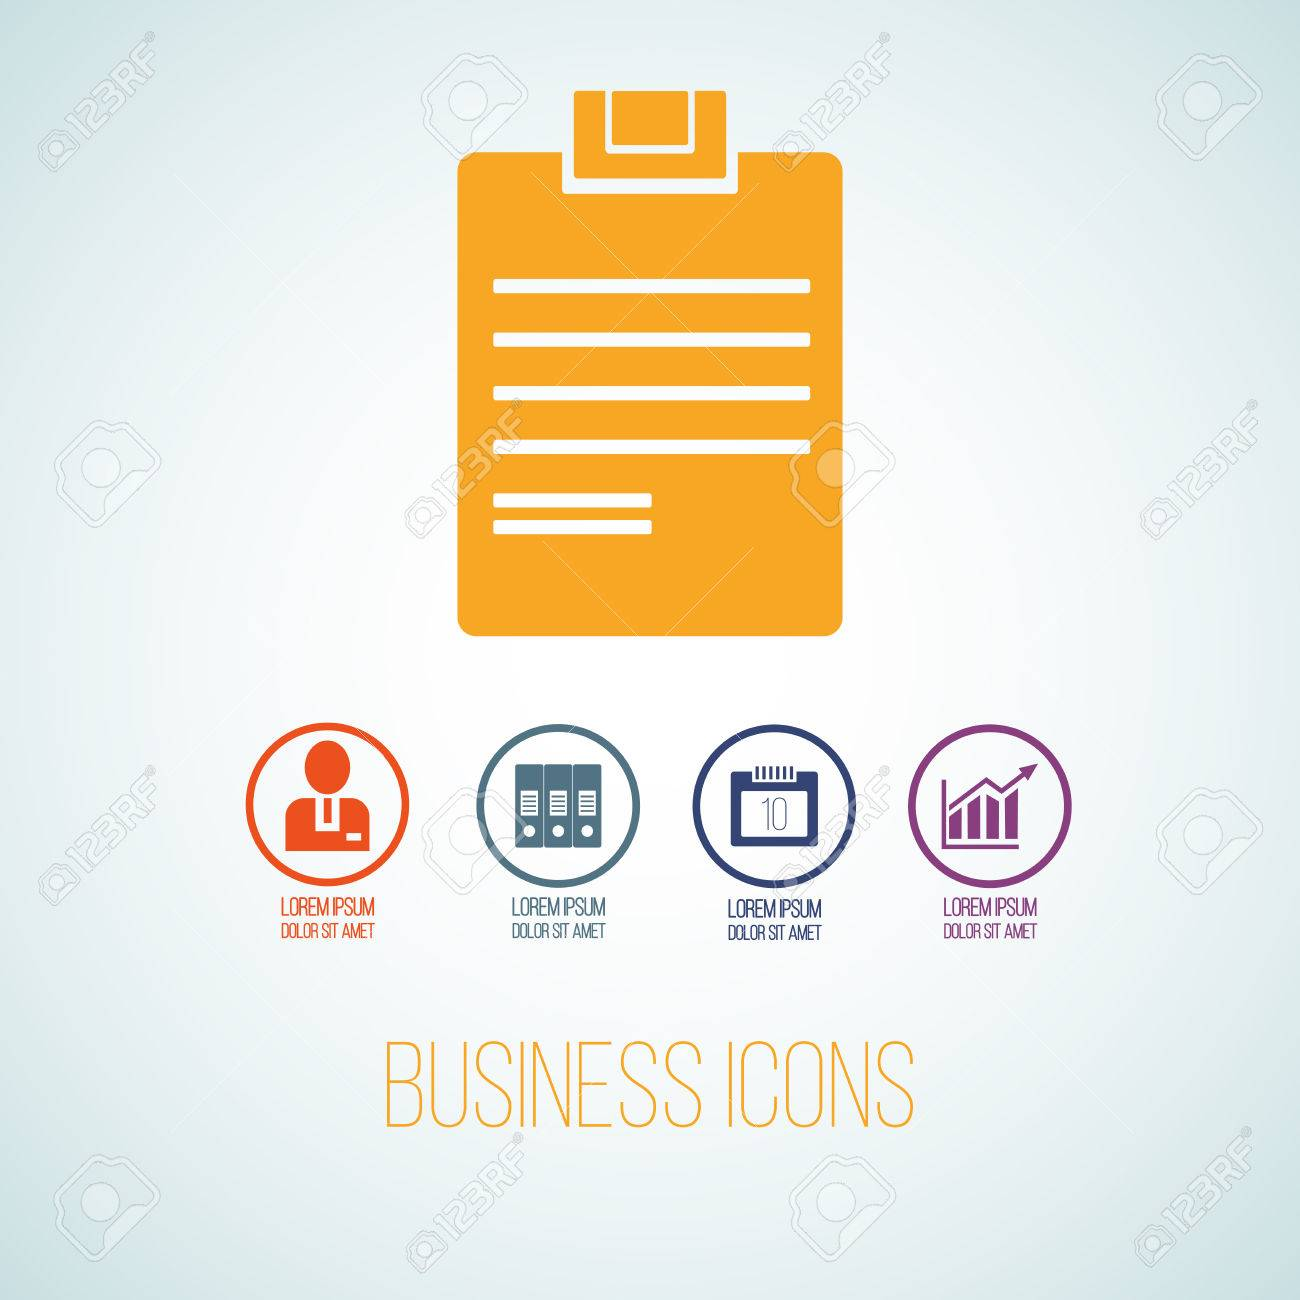 Vector Illustration Of Business Icon In The Form Of Tablet For